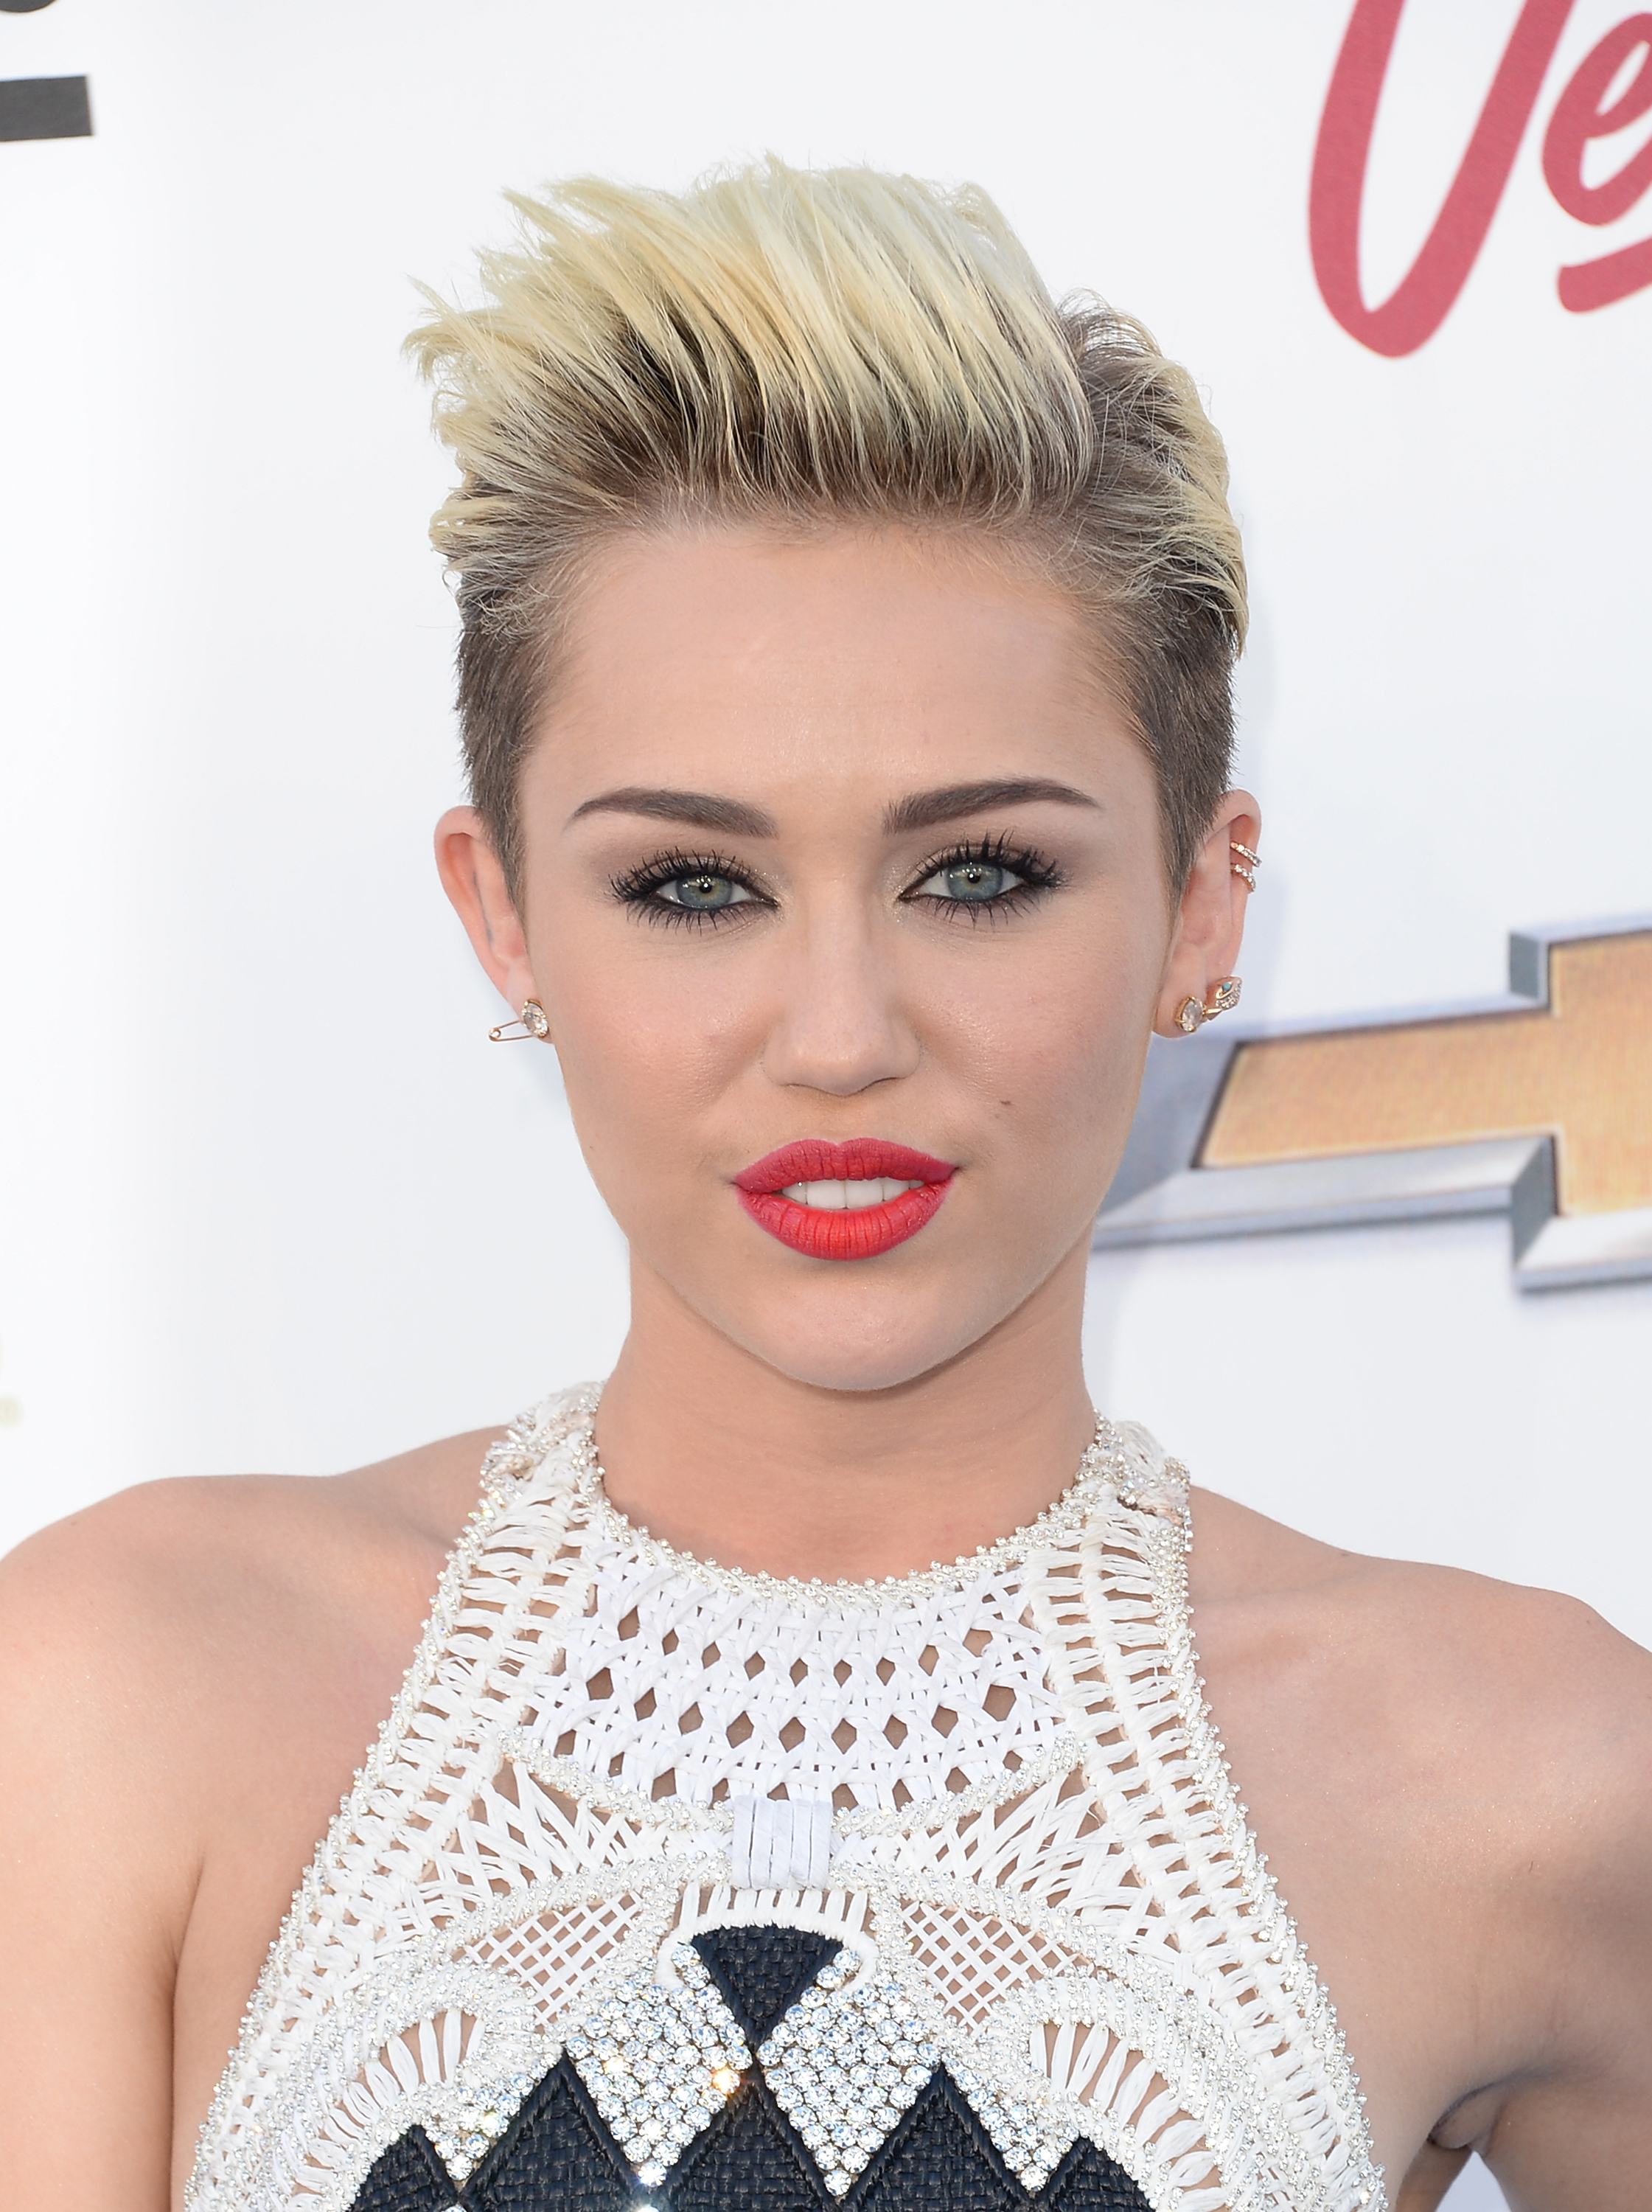 LAS VEGAS, NV - MAY 19:  Singer Miley Cyrus arrives at the 2013 Billboard Music Awards at the MGM Grand Garden Arena on May 19, 2013 in Las Vegas, Nevada.  (Photo by Jason Merritt/Getty Images)